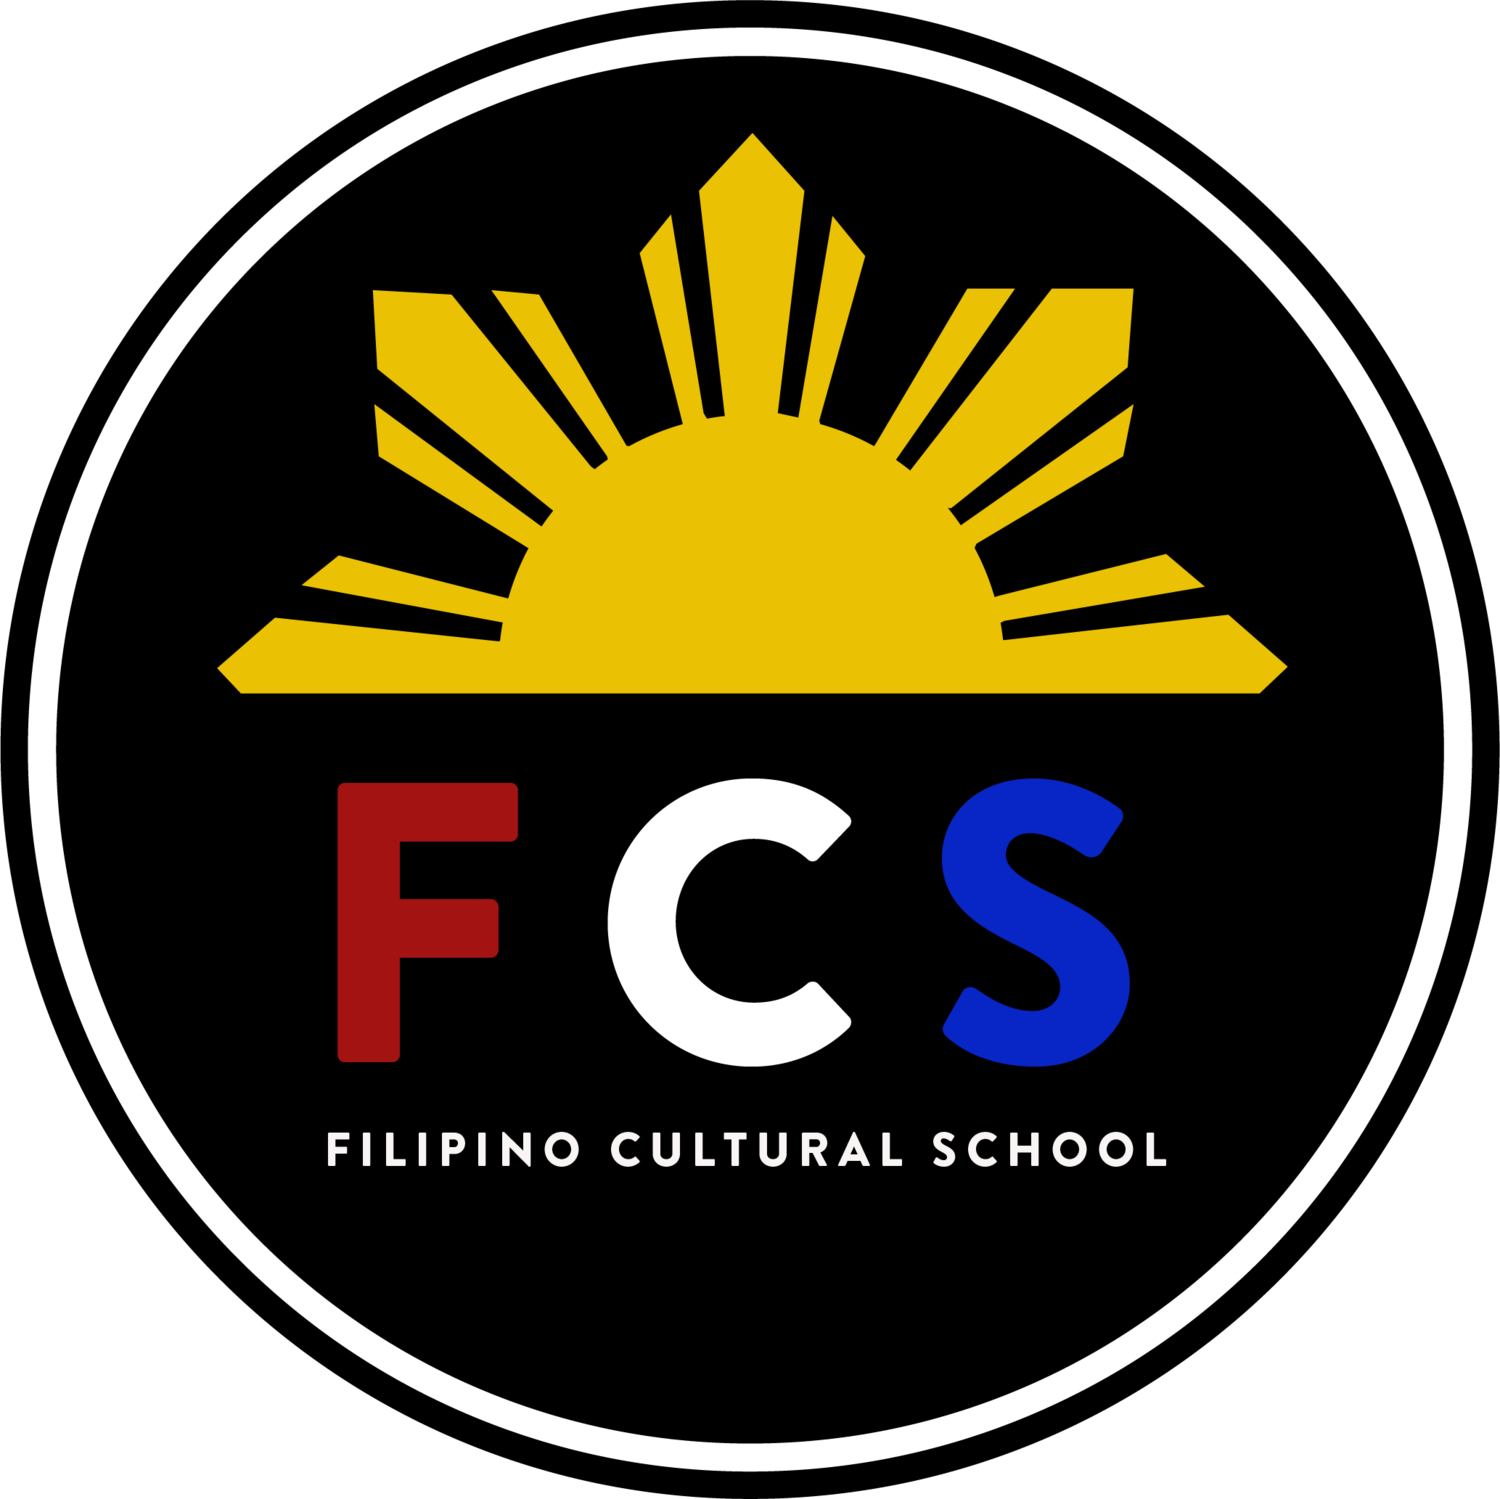 Filipino Cultural School